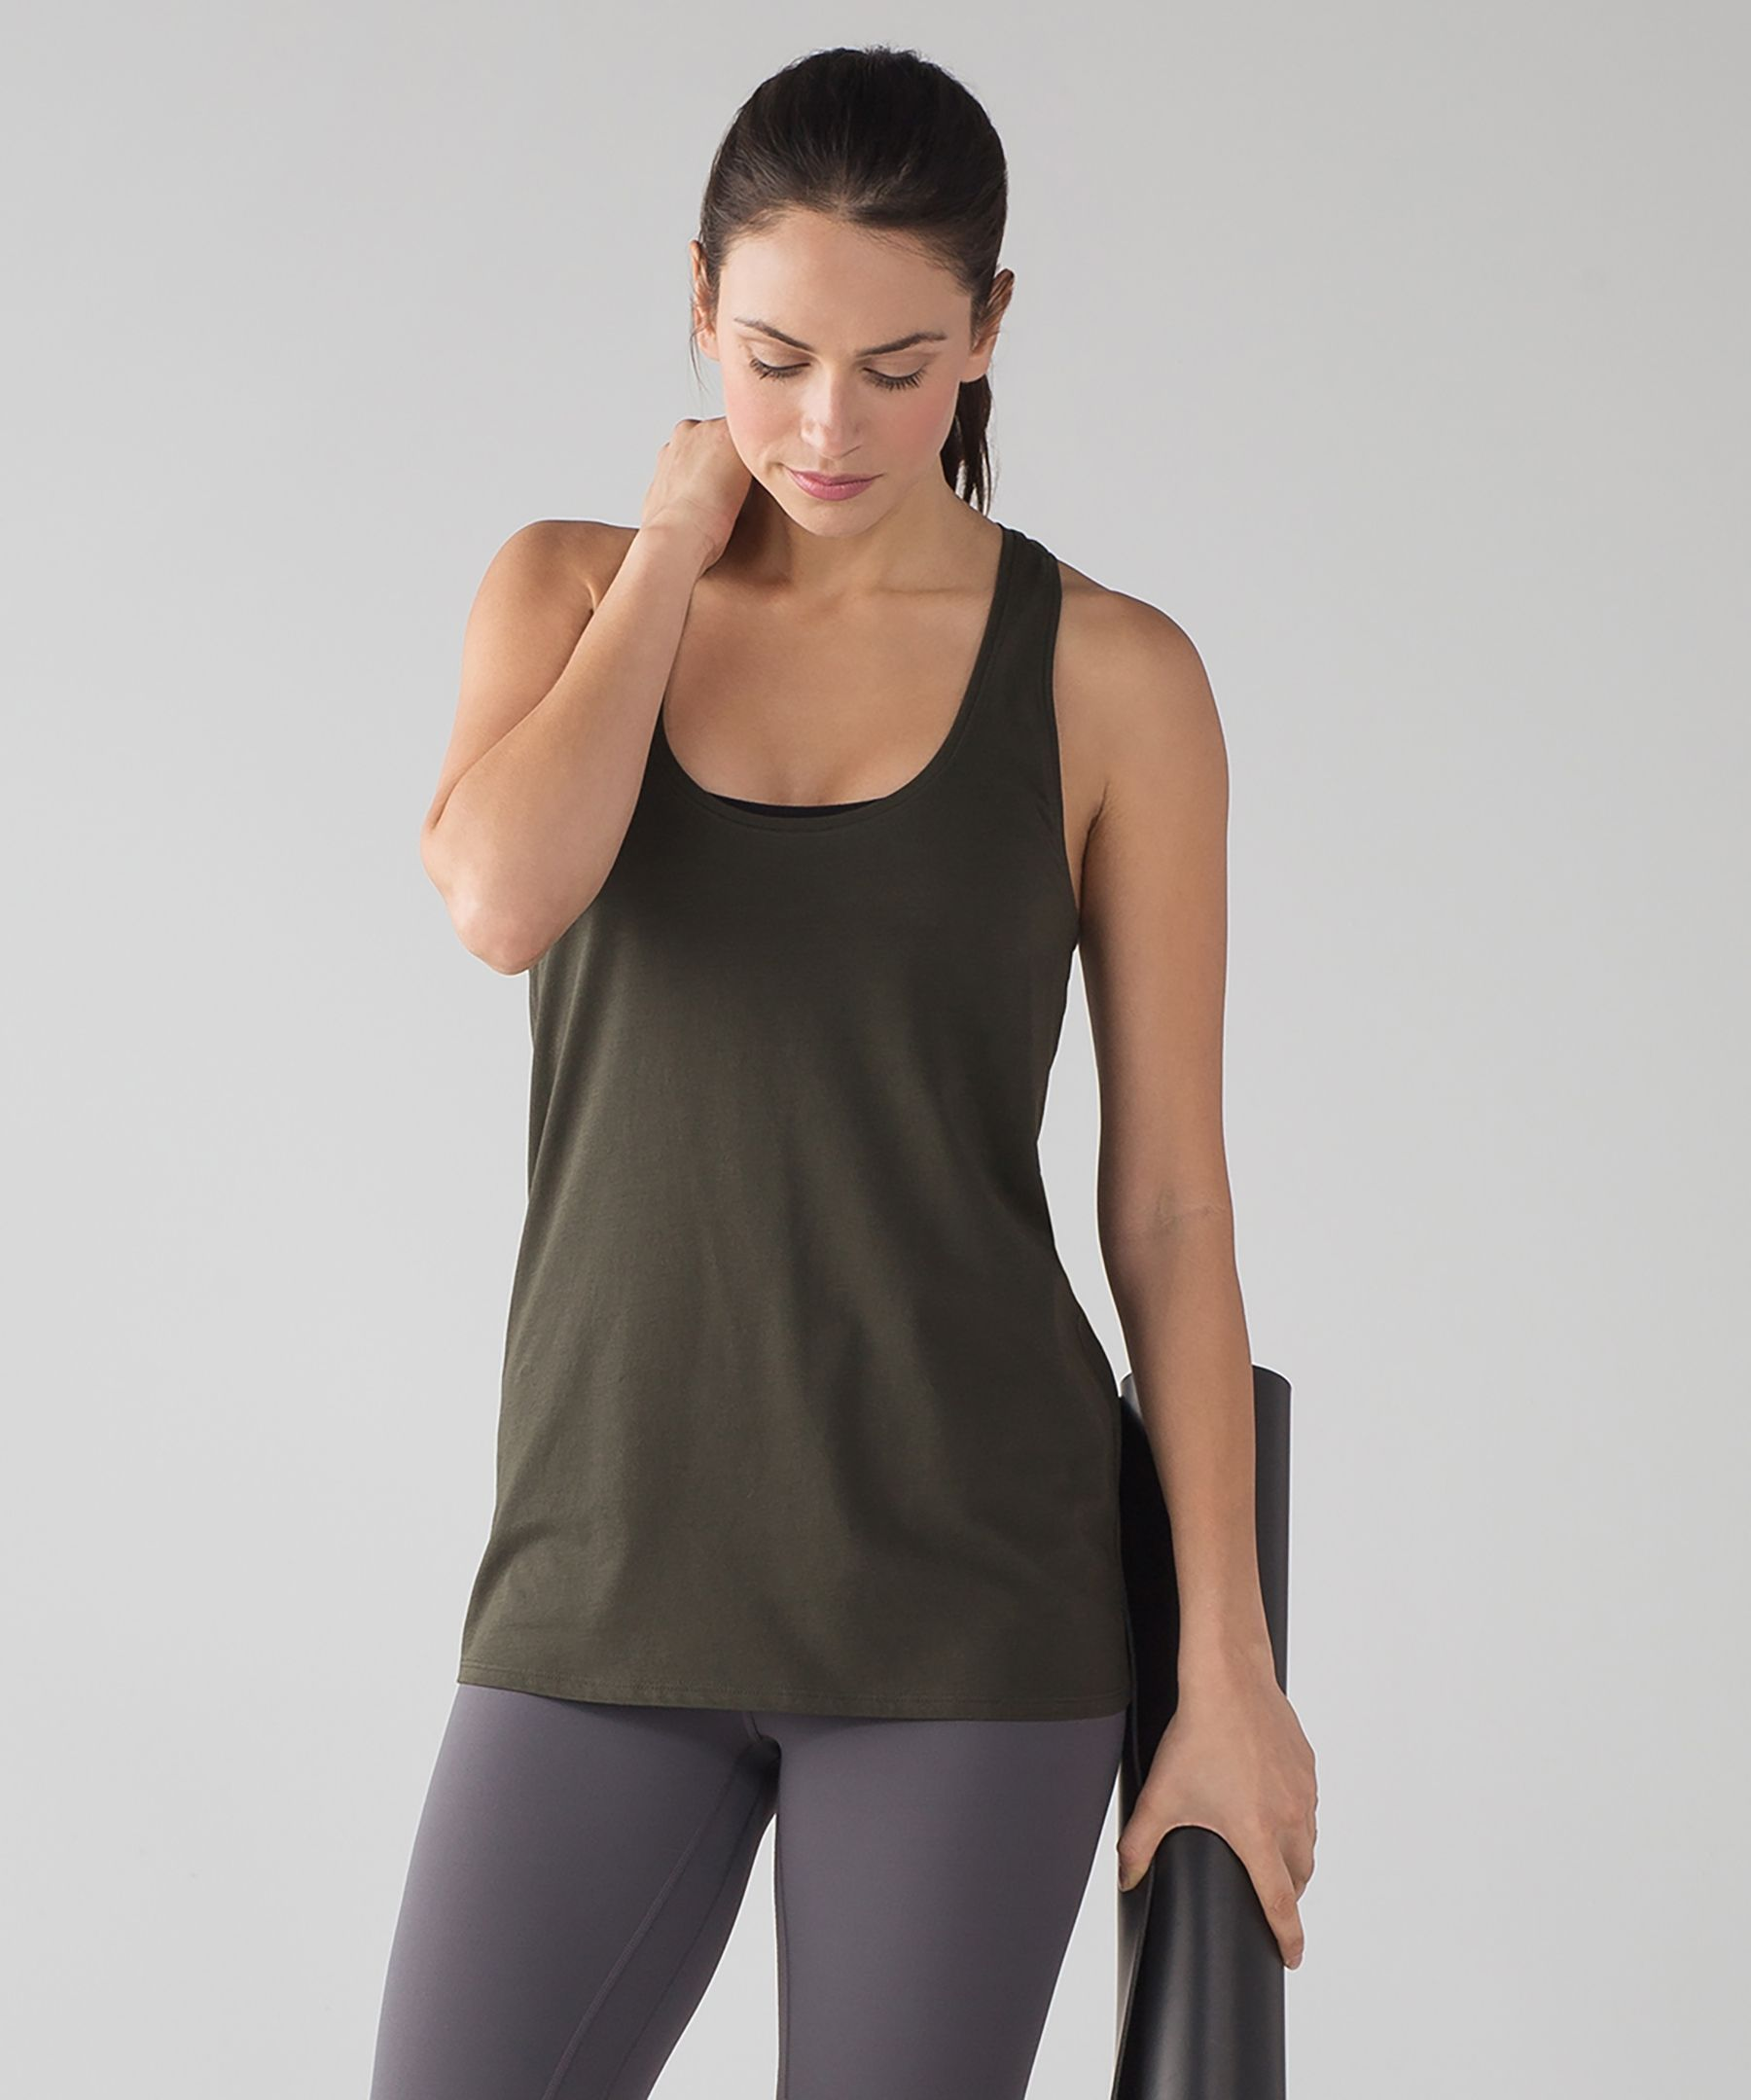 Love tank dark olive clothes for women over 50